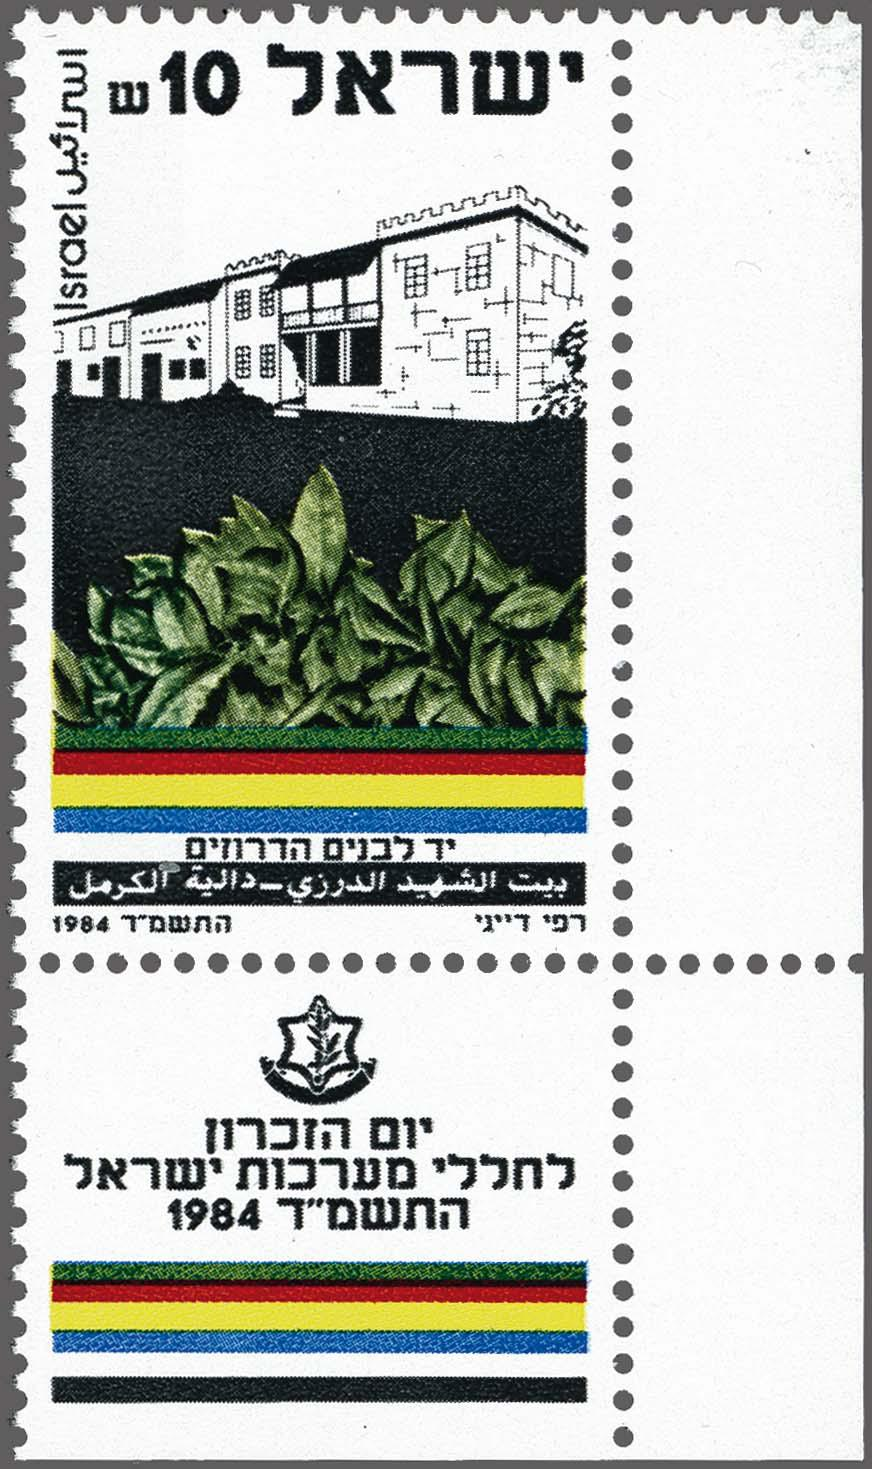 Lot 206 - Outside Europa Israel -  Corinphila Veilingen Auction 250-253 - Day 1 - Foreign countries